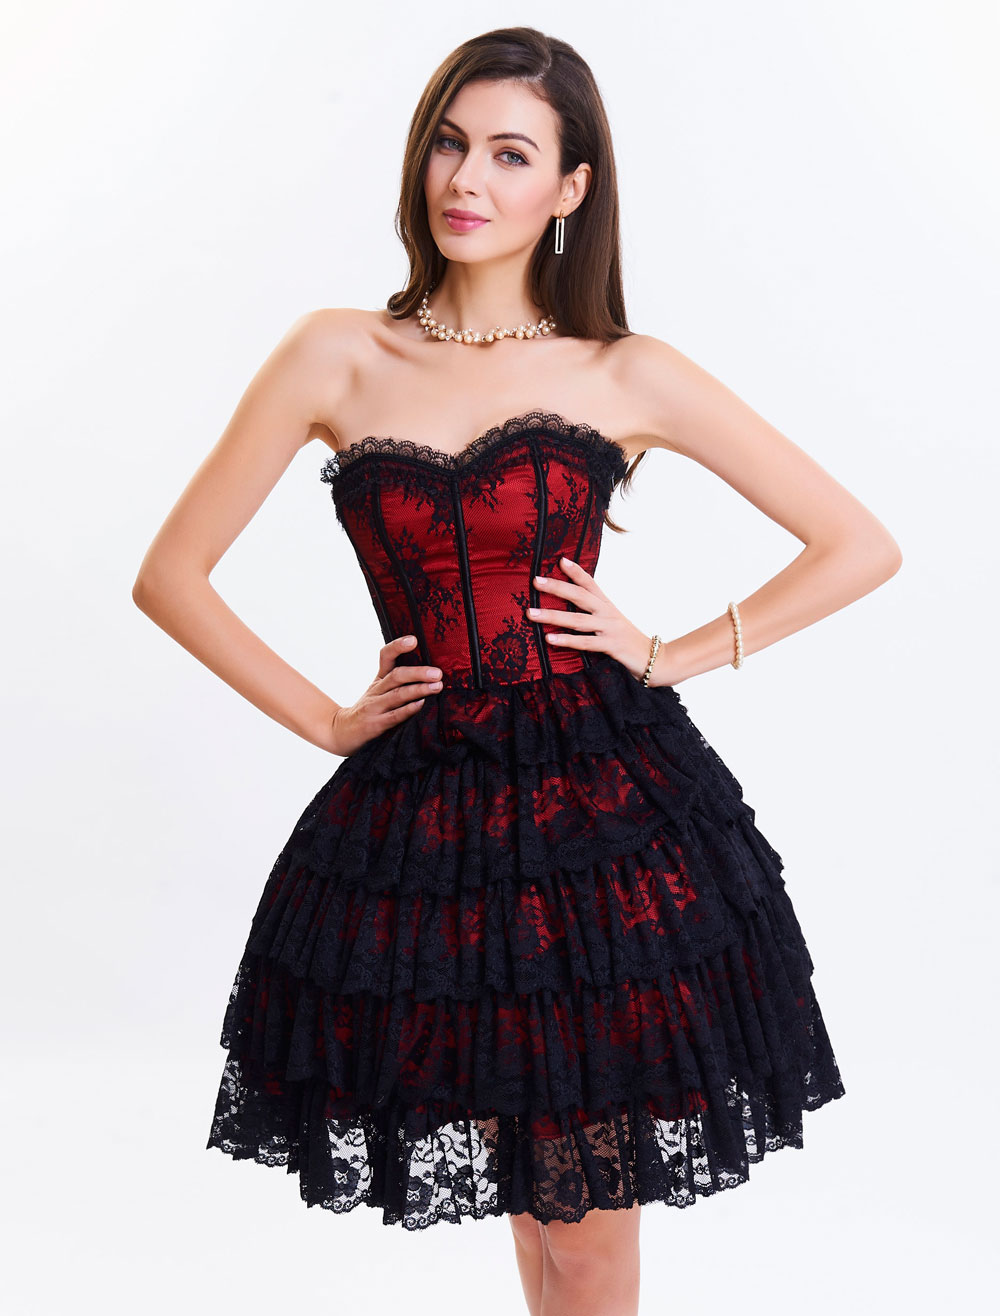 Lace Corset Dress Women's Sweetheart Lace Up Strapless Two Tone Layered Overbust Corsets